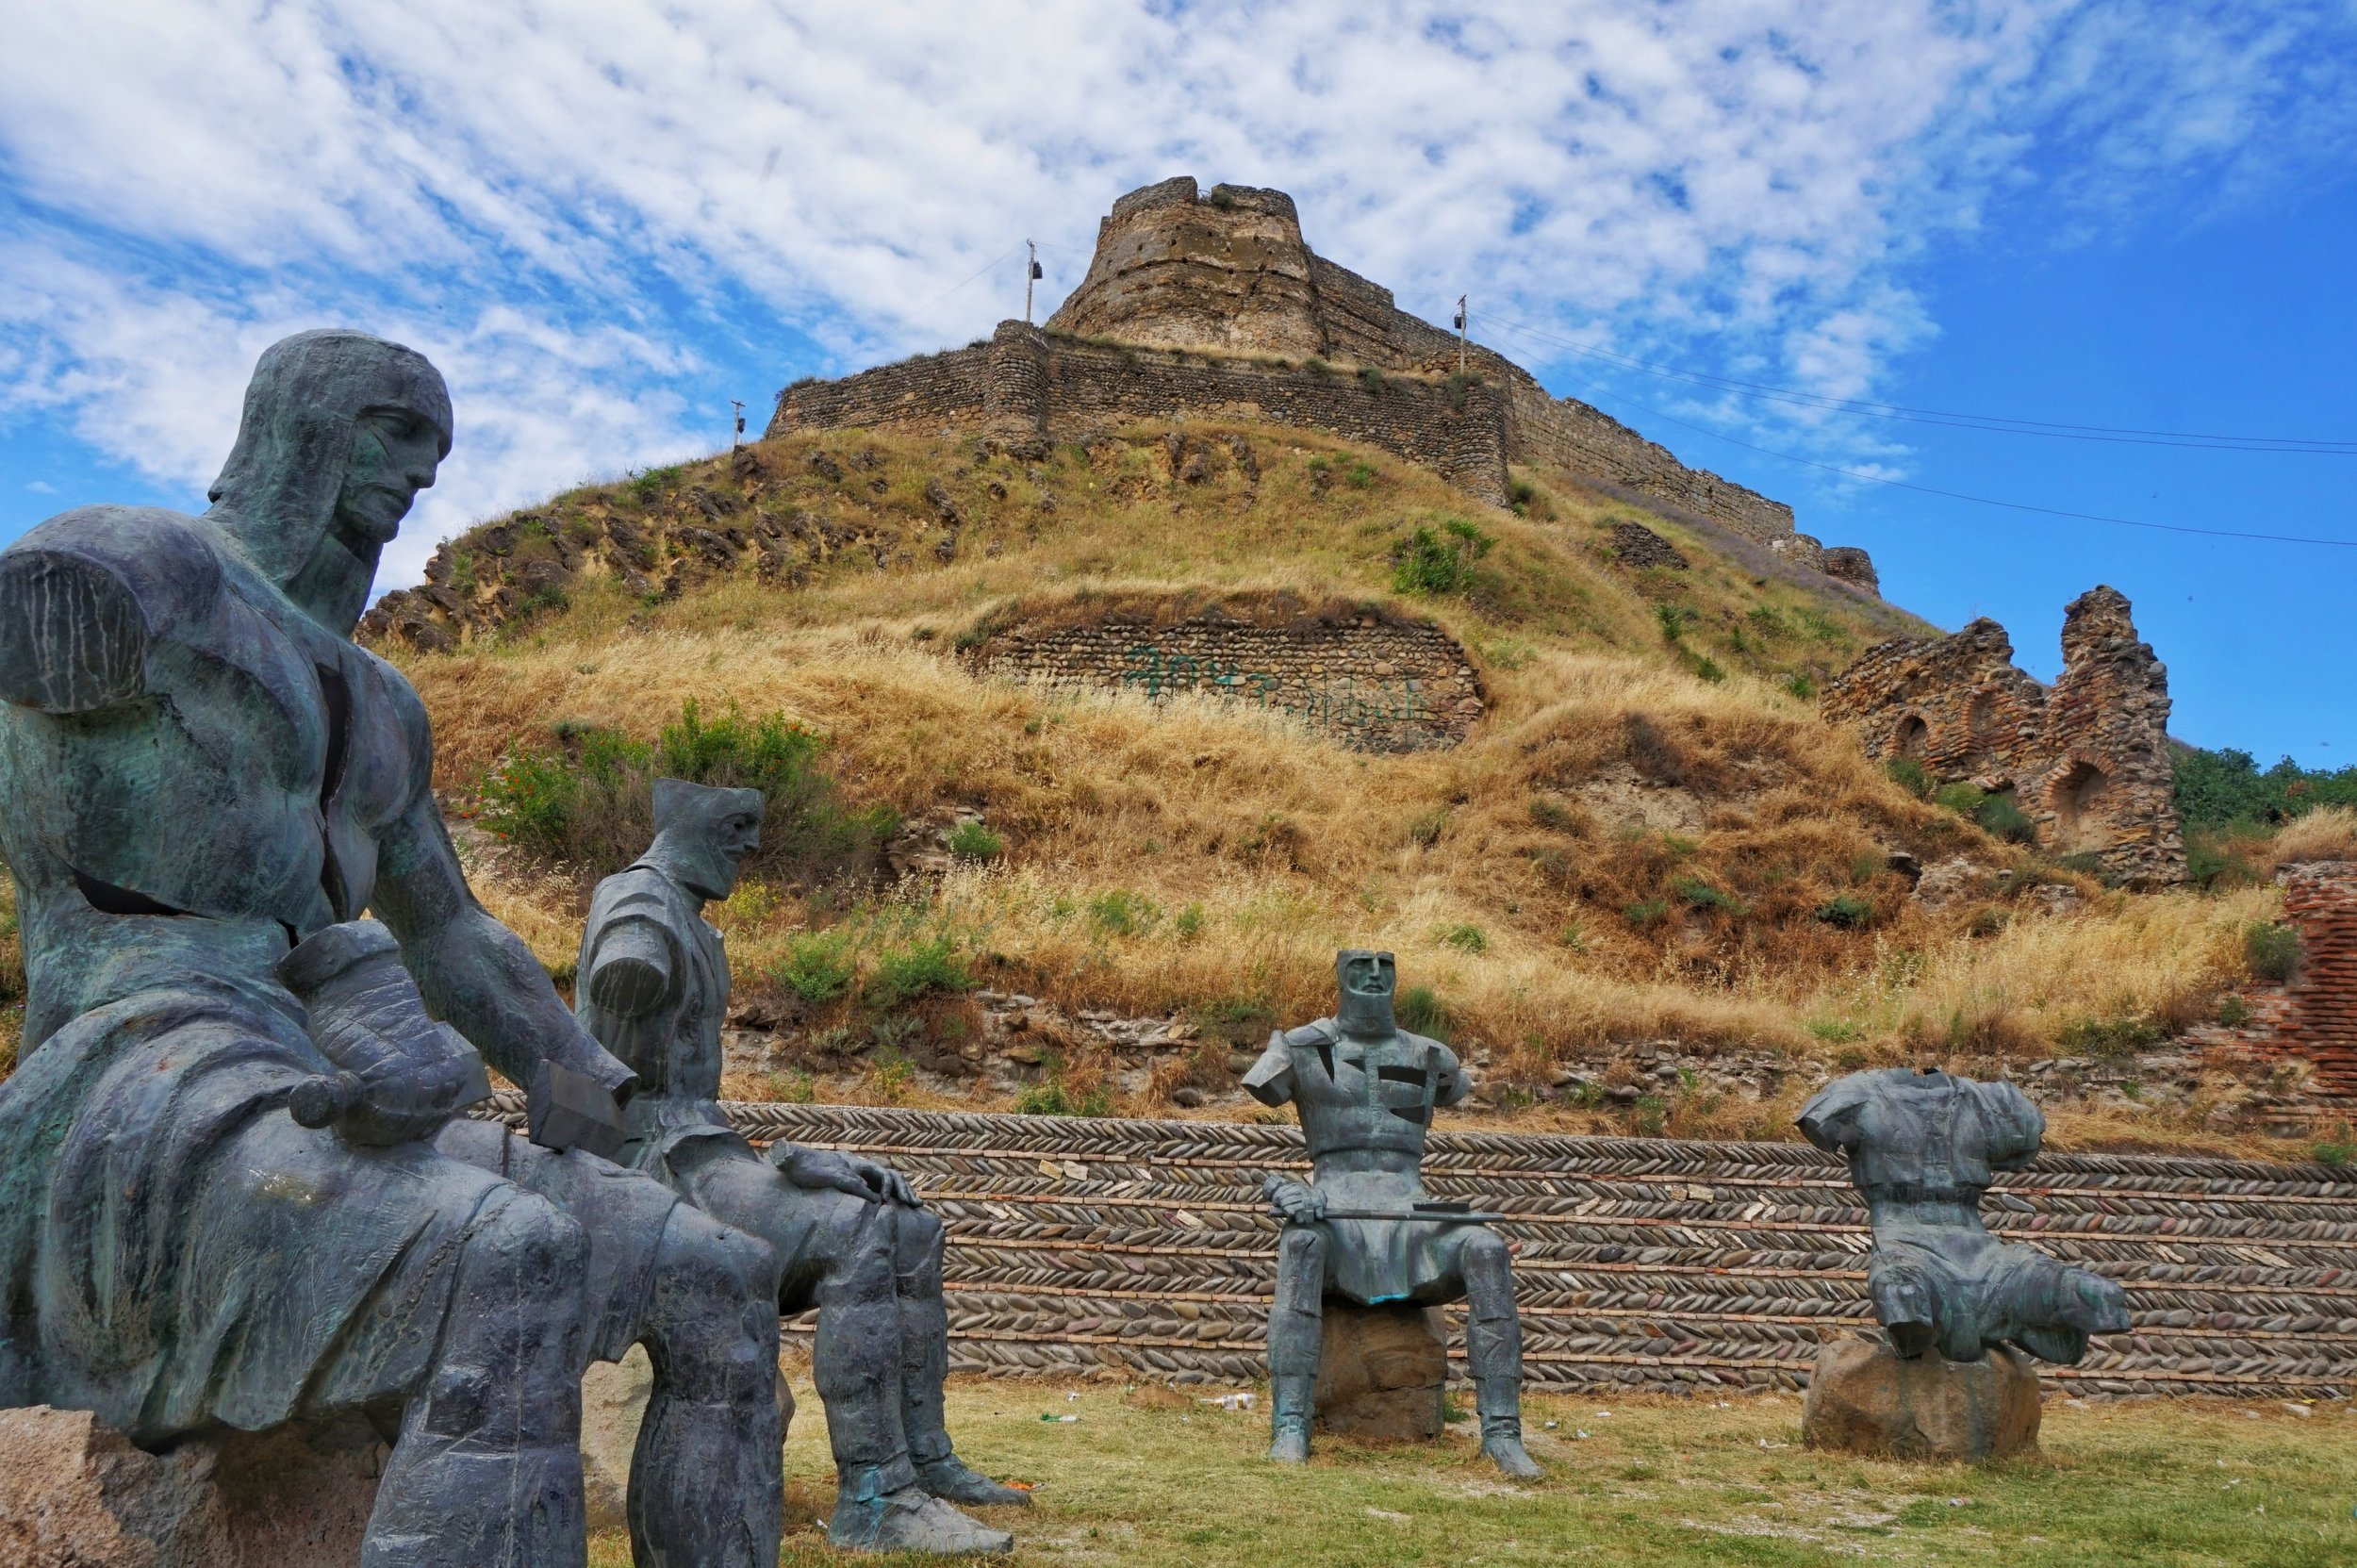 The fortress in Gori is one of the best things to see on a day trip to Gori from Tbilisi